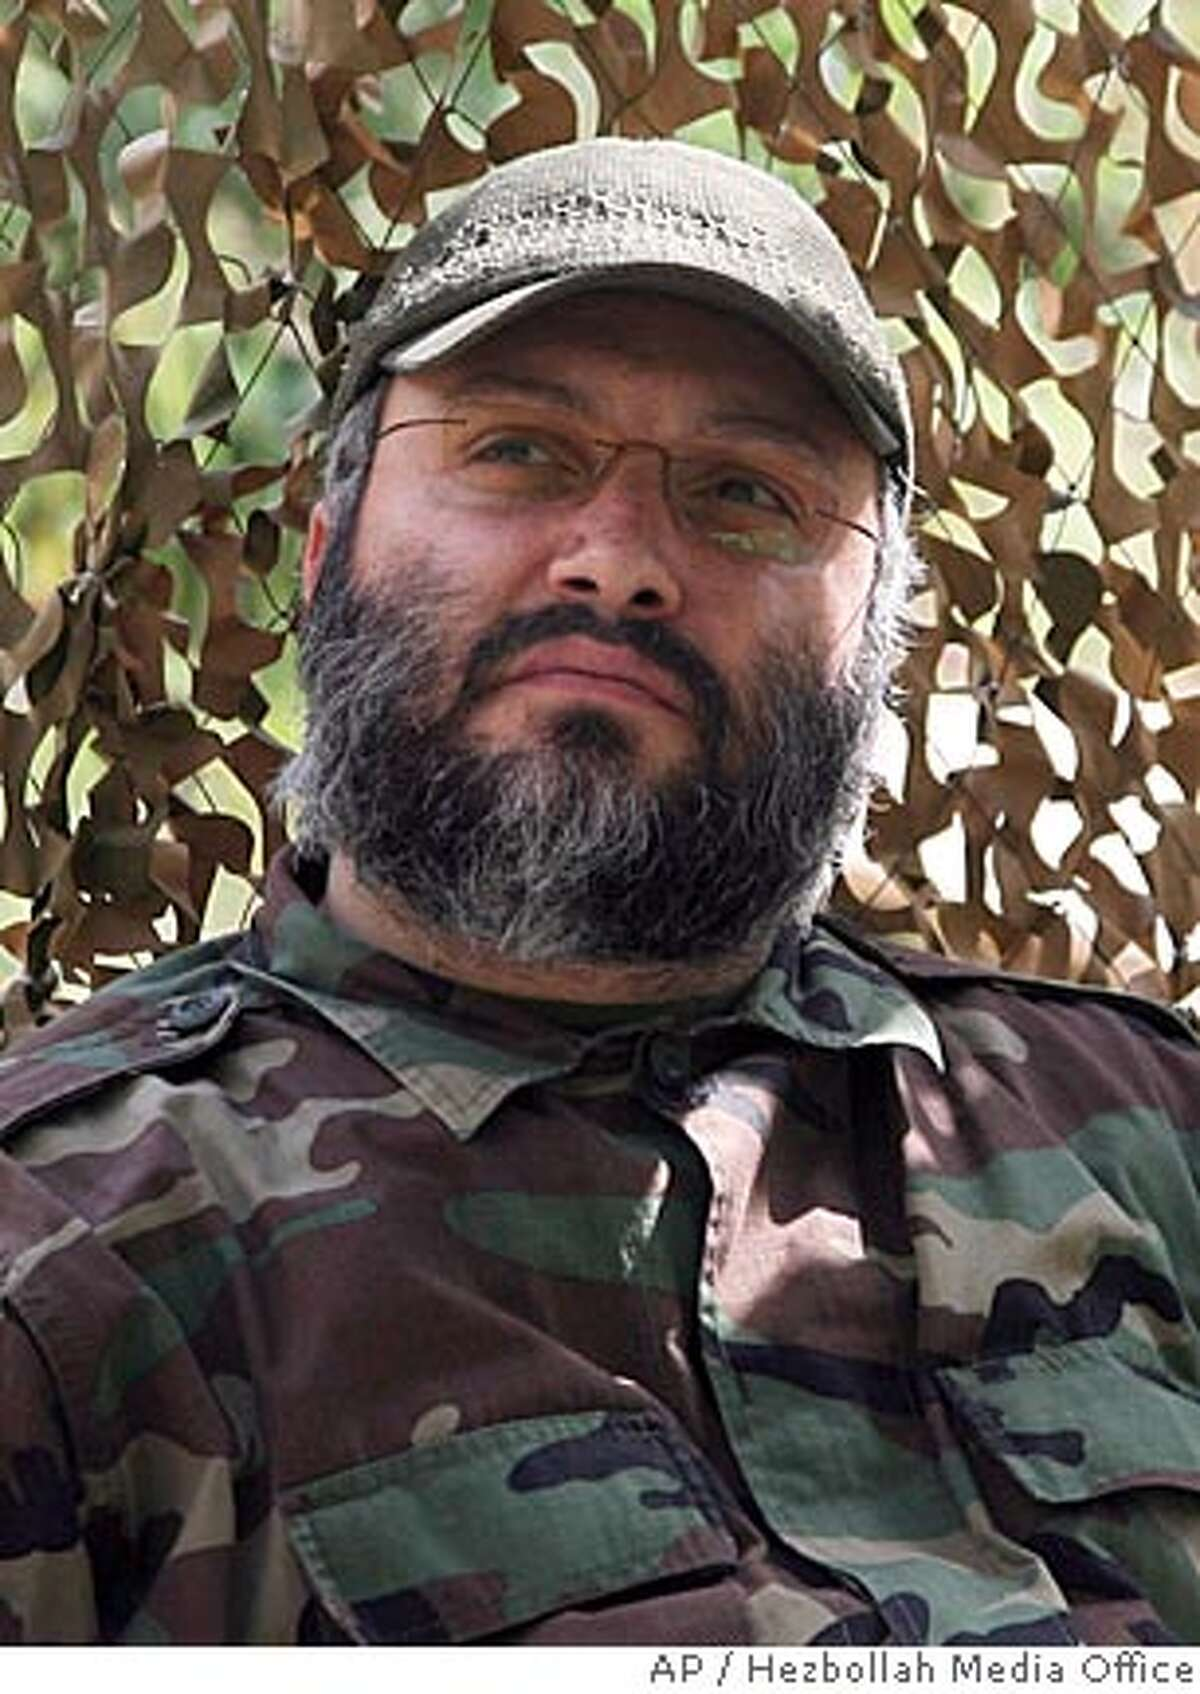 ** RETRANSMISSION FOR ALTERNATE CROP ** This picture released by Hezbollah media office, shows Imad Mughniyeh, the elusive senior Hezbollah commander who the group said Wednesday Feb. 13, 2008 been killed. Fugitive militant Imad Mughniyeh, a top U.S. target suspected in the killings of hundreds of Americans as well as a series of infamous strikes against U.S., Israeli and Jewish targets, was killed in a car bomb blast in the Syrian capital Damascus, Iranian television and a Syrian human rights group said Wednesday. Hezbollah accused Israel for the assassination. (AP Photo/Hezbollah Media Office,ho) ** NO SALES **